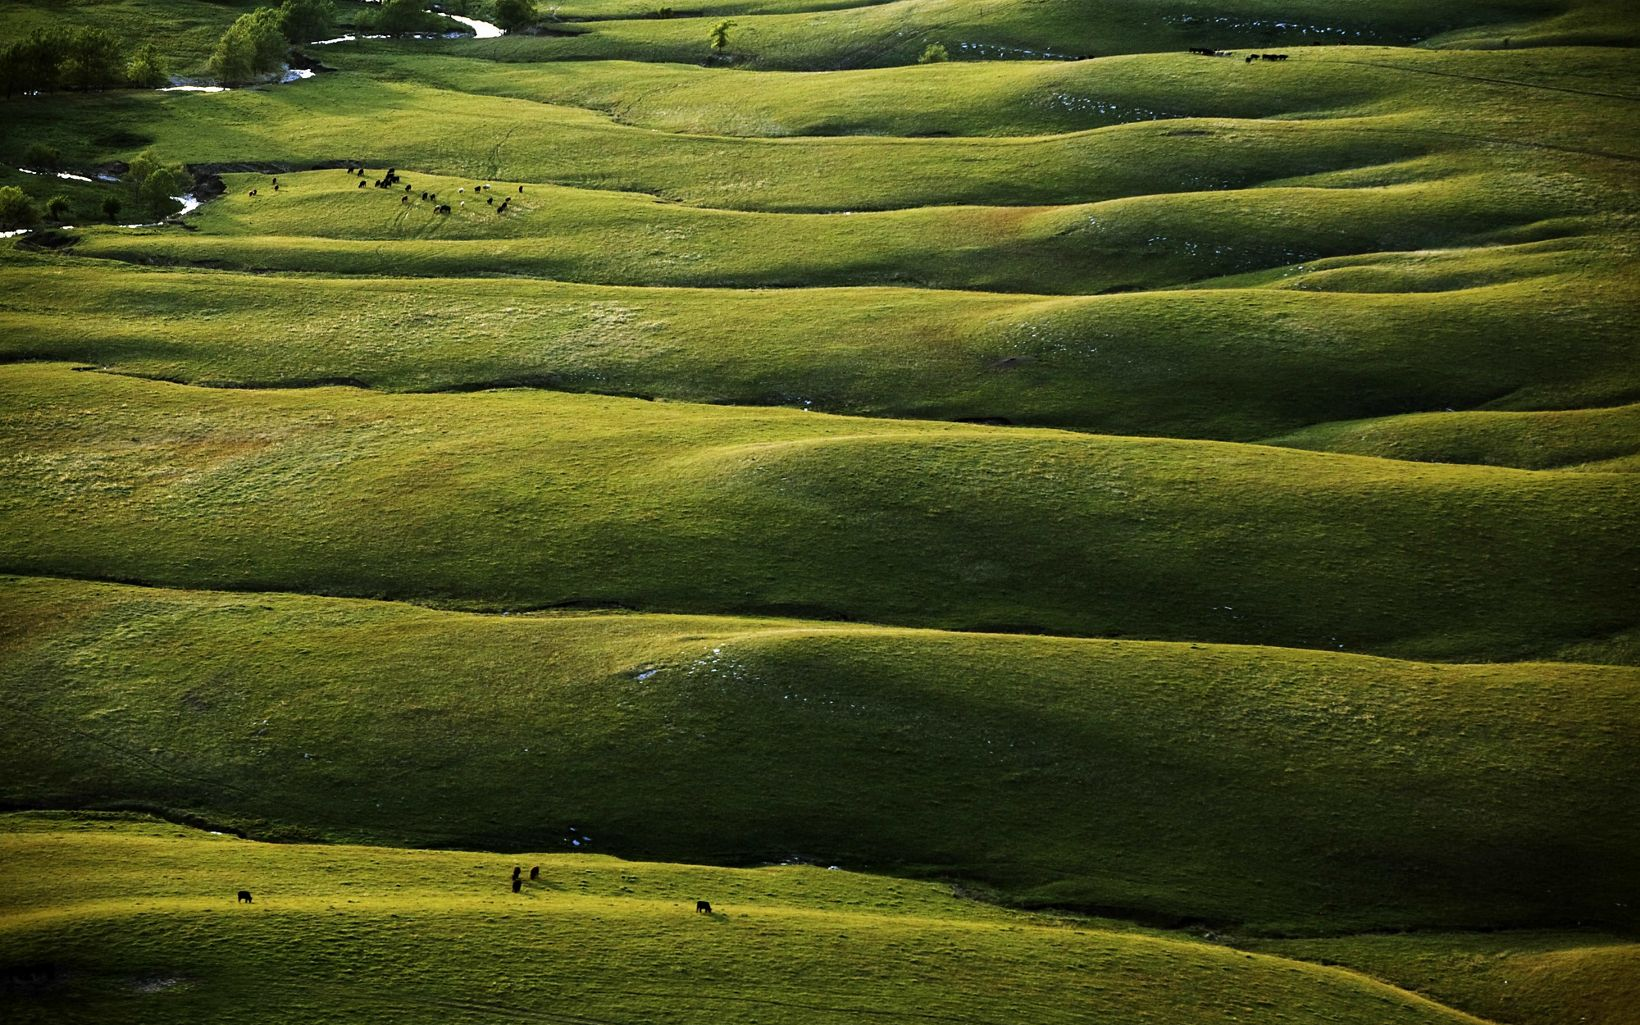 Aerial of the Flint Hills in the Beaumont area, generally north and east of Wichita, Kansas.